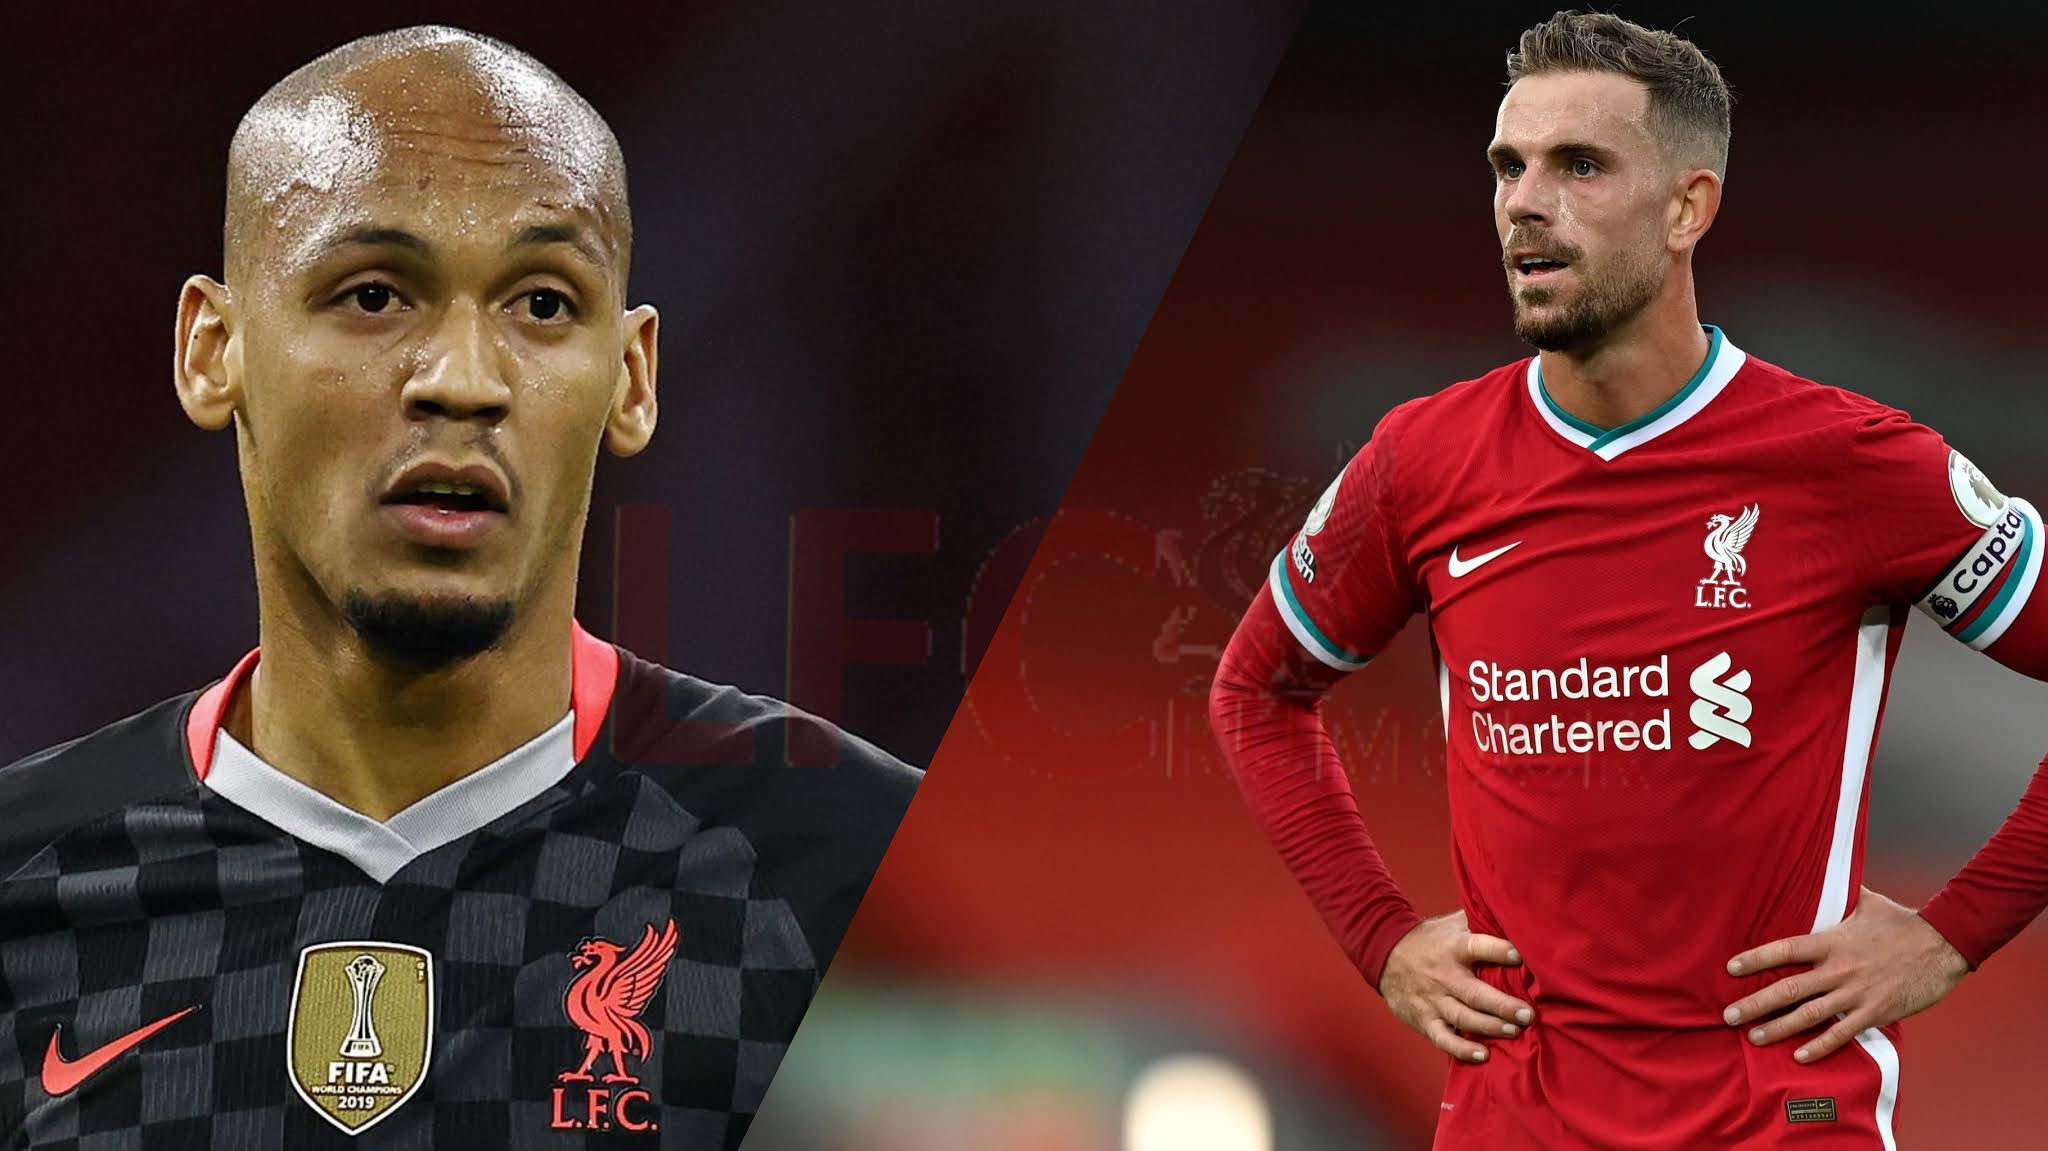 Jordan Henderson fear for his Liverpool future amid Fabinho's increasing form.